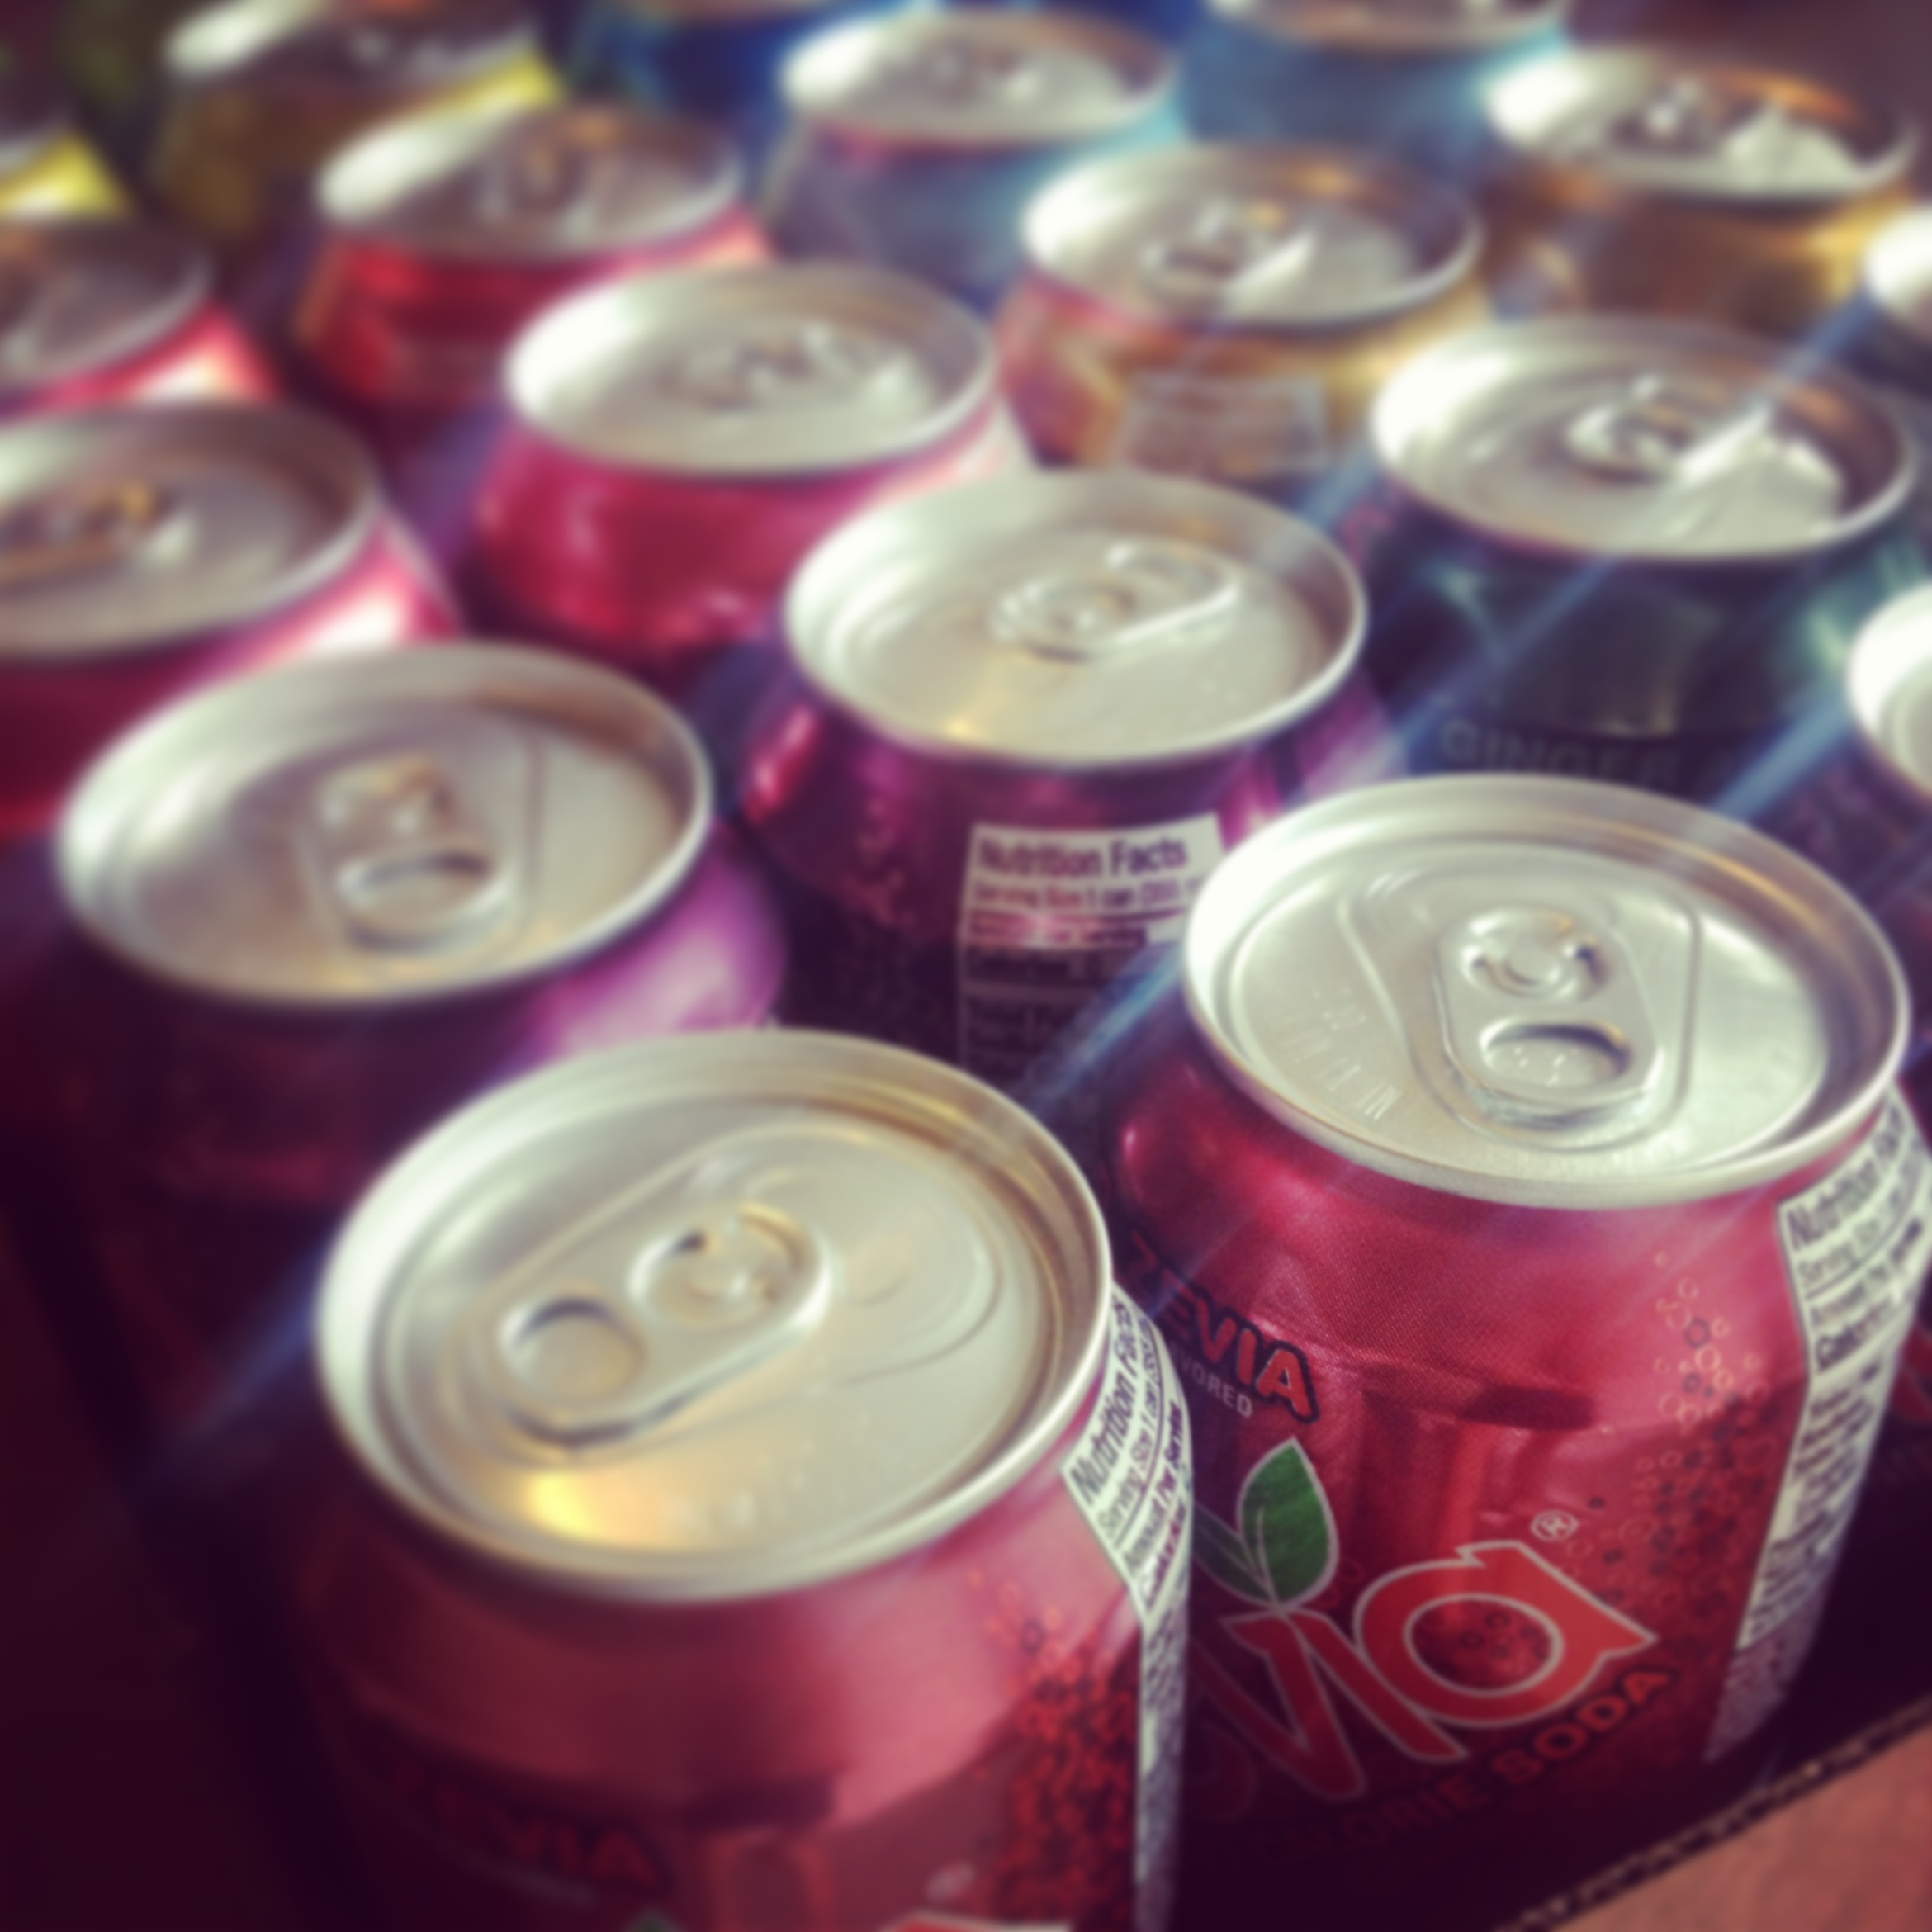 This beautiful rainbow case of Zevia can be yours!